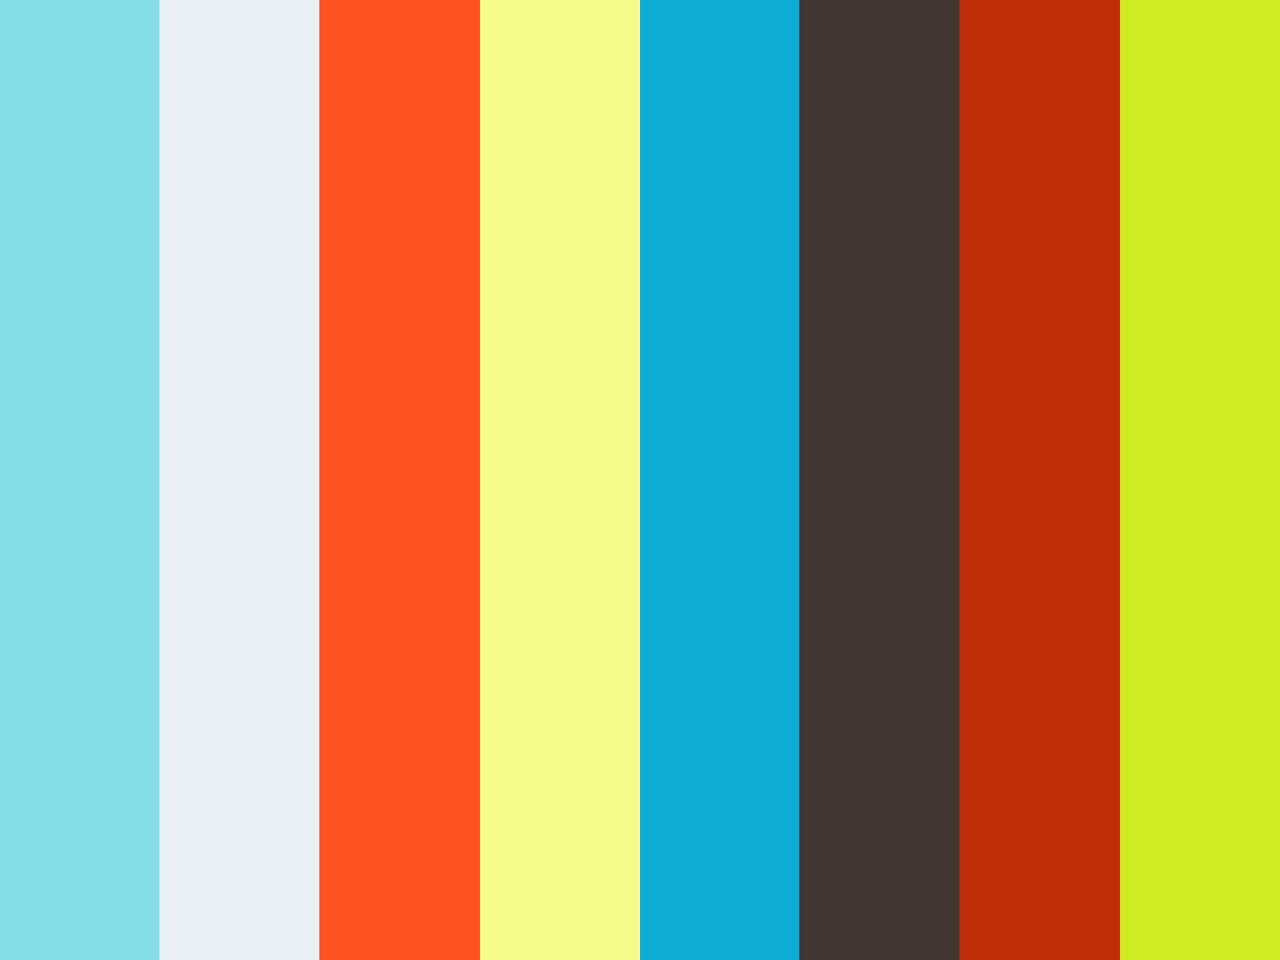 Creating Foam Popper Heads from Flip-Flop Sandals on Vimeo